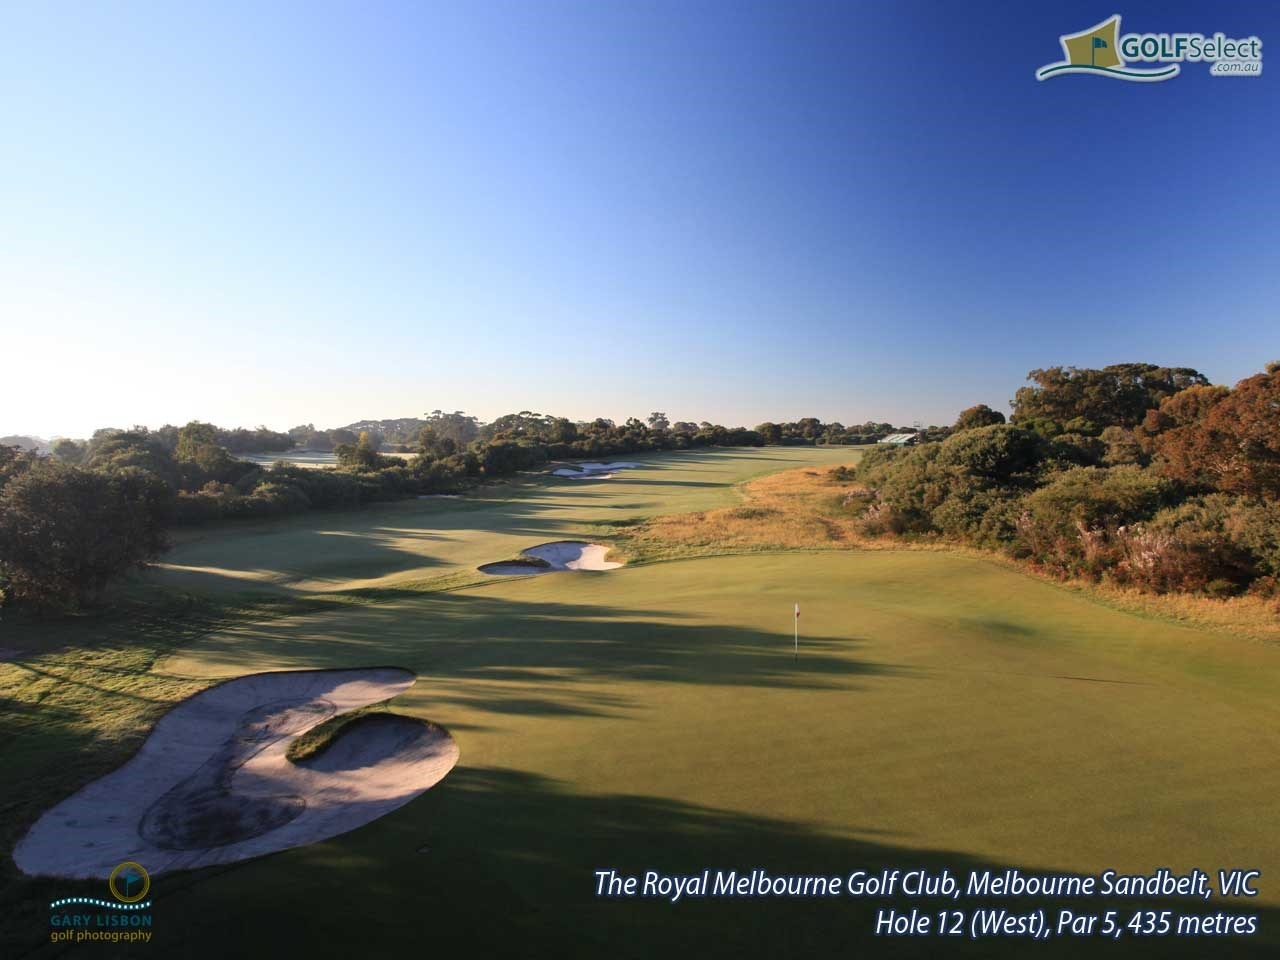 The Royal Melbourne Golf Club (West Course) Hole 12 (West), Par 5, 435 metres